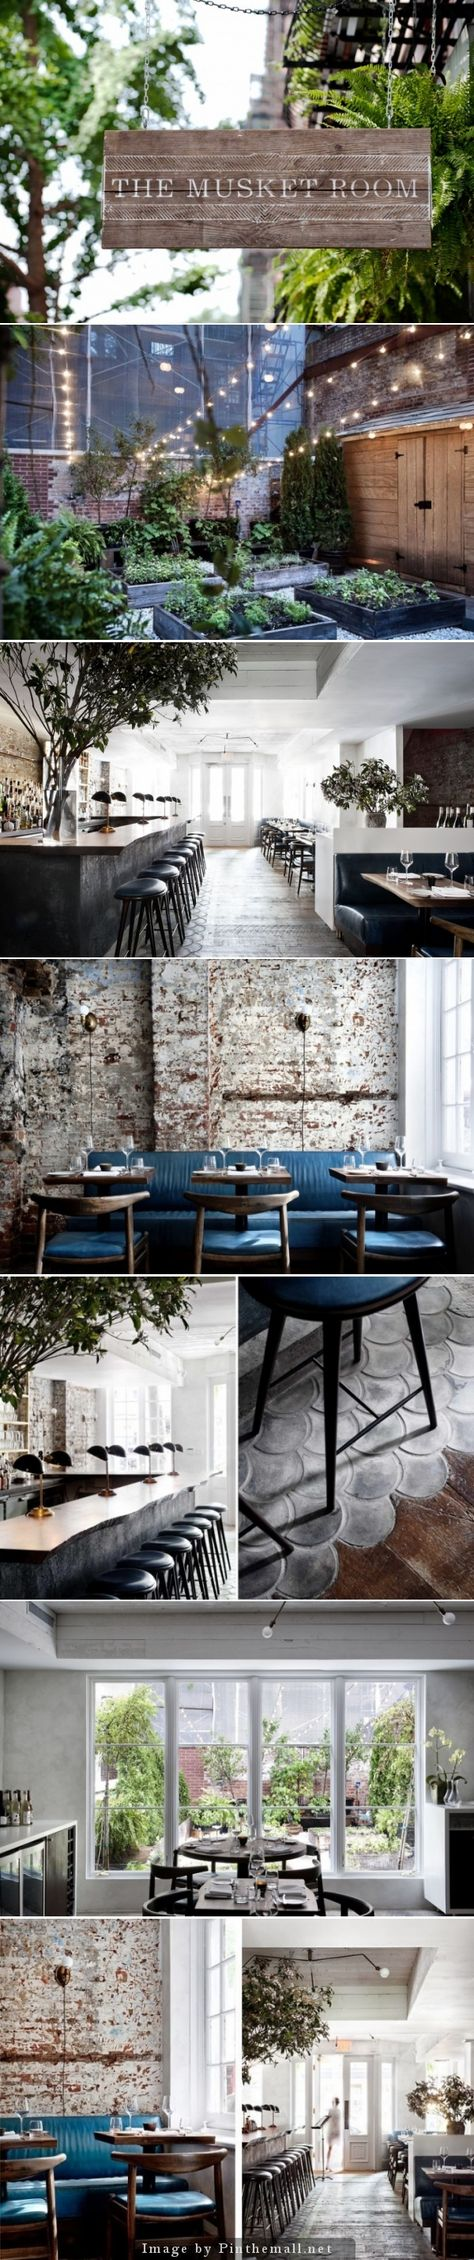 140 best Restaurant Design images on Pinterest | World ...